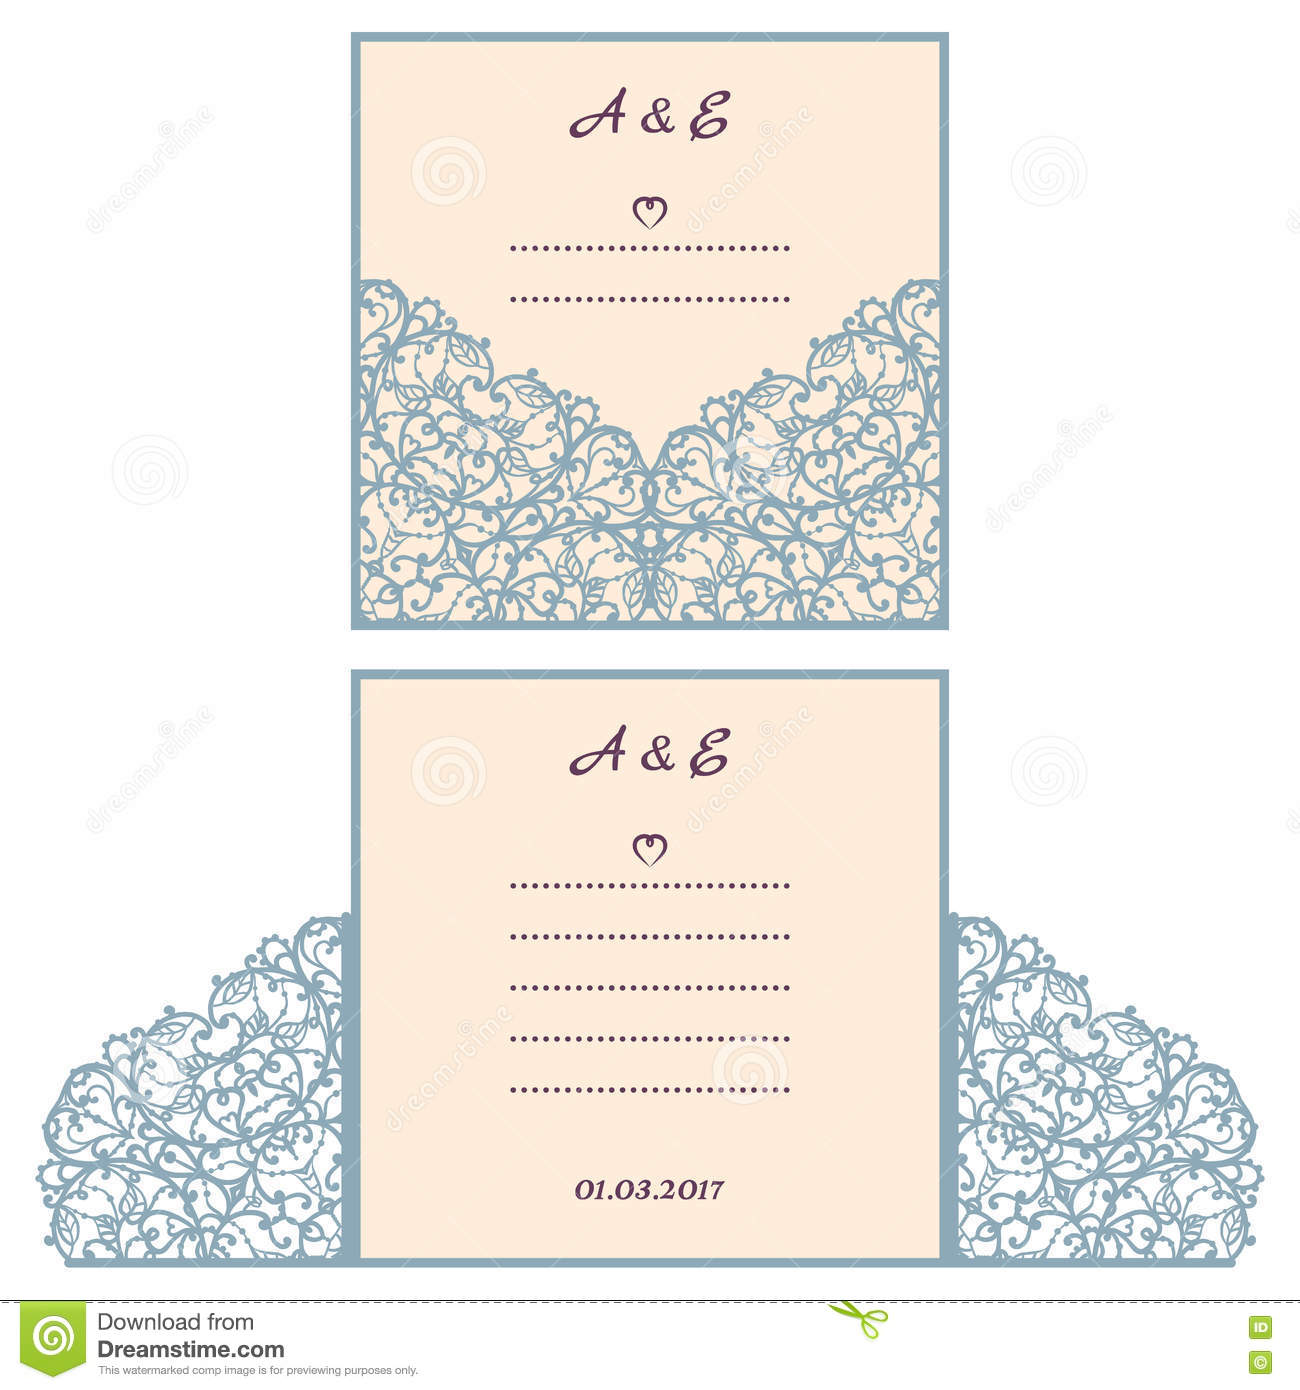 Wedding Invitation Or Greeting Card With Abstract Ornament Vector Envelope Template For Laser Cutting